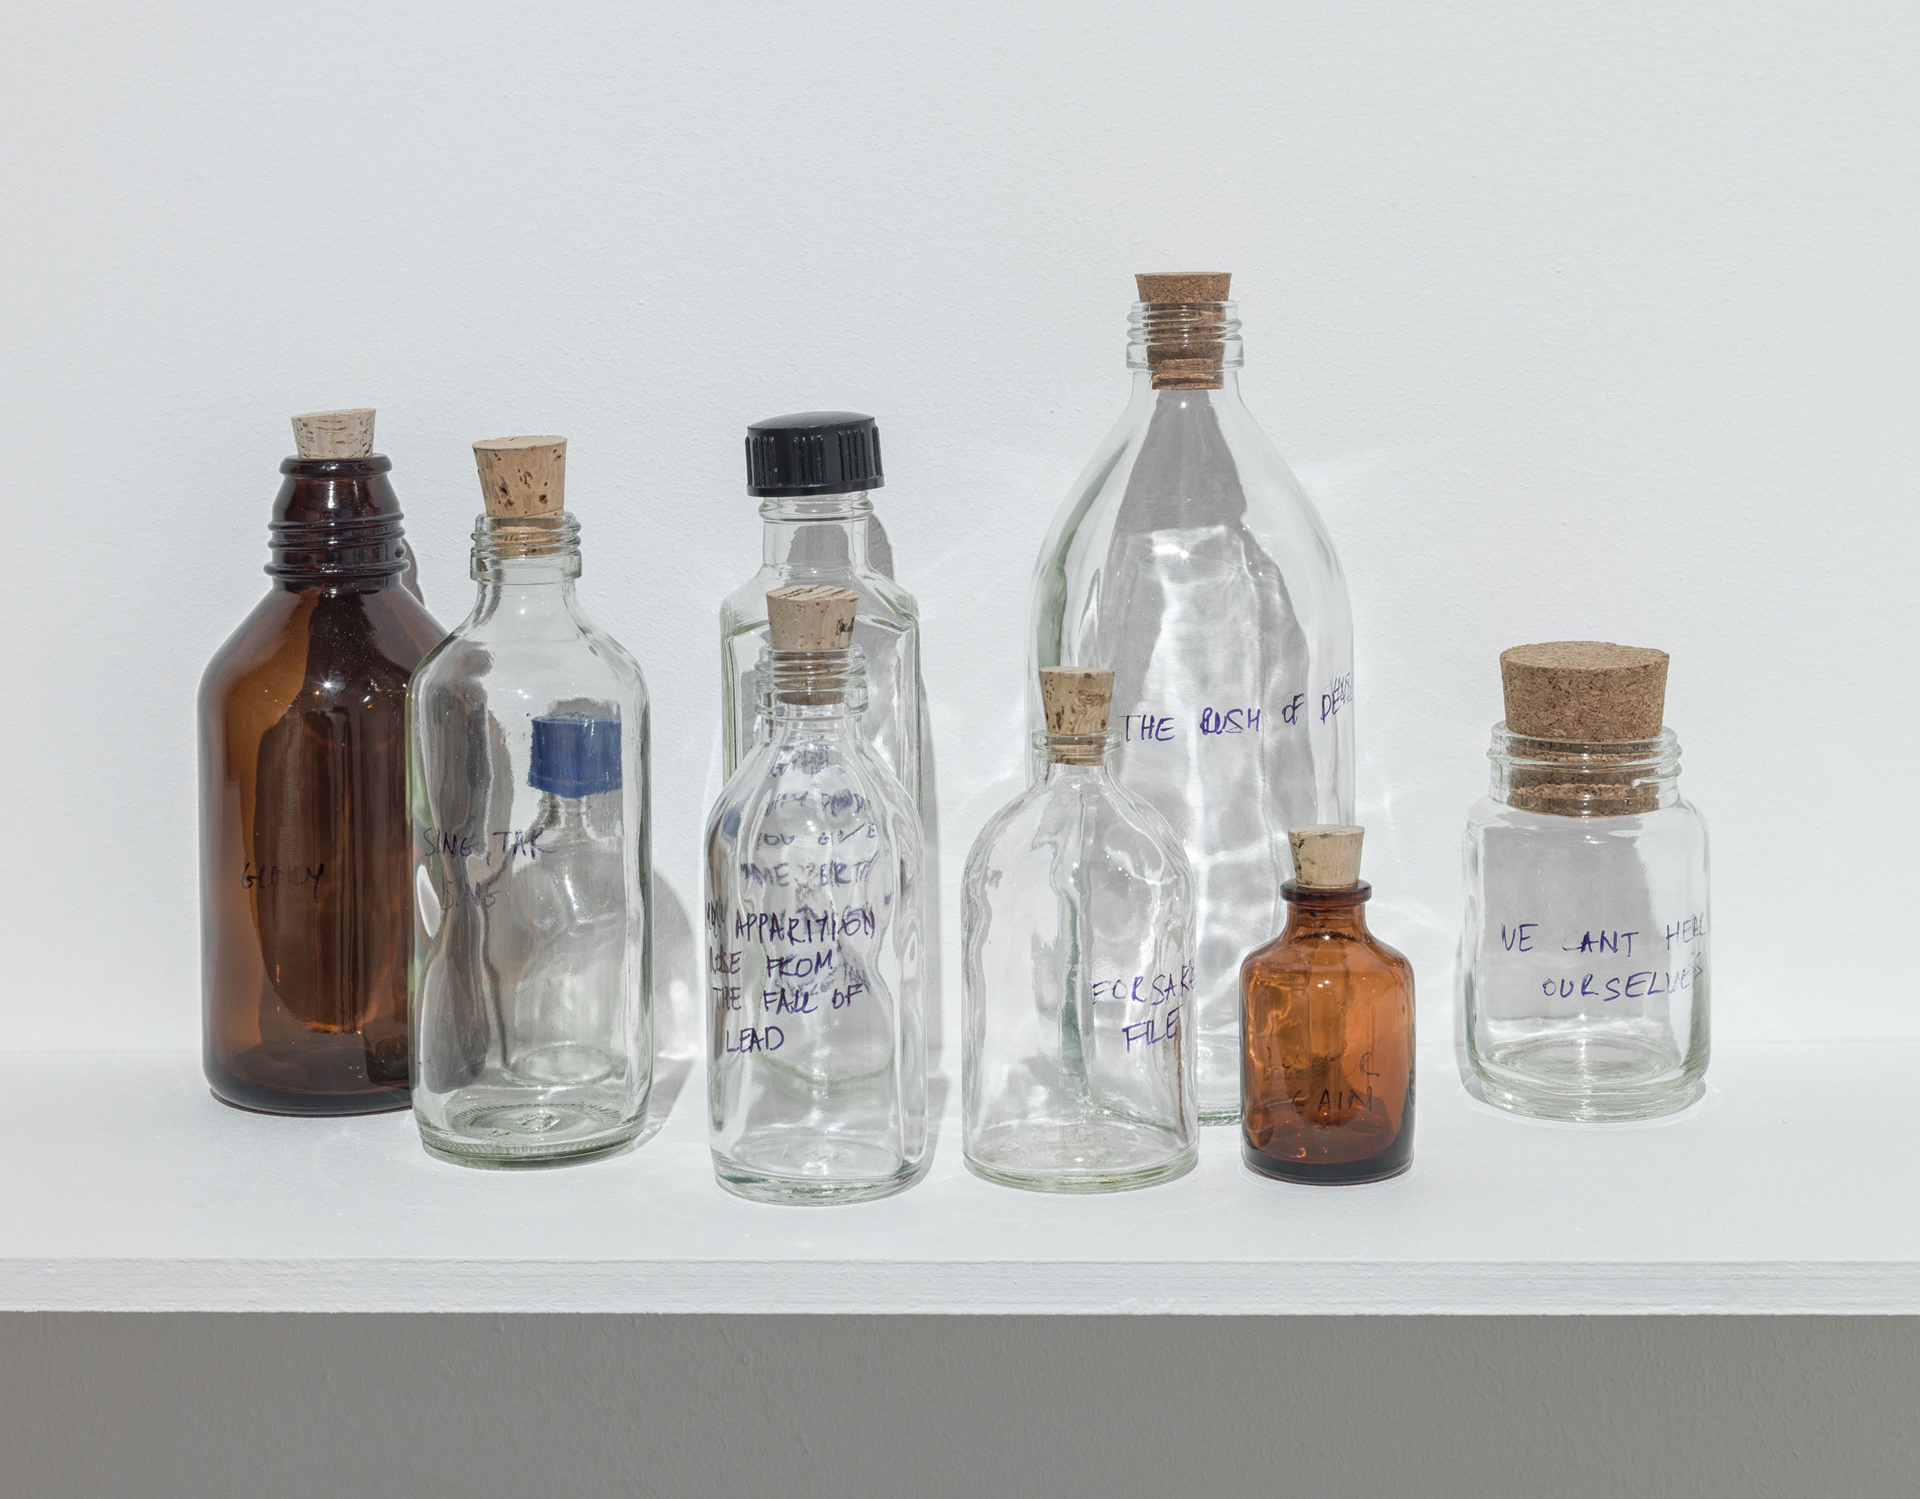 Shilpa Gupta, Untitled, A spoken poem in a bottle, Photograph, 2018| For, In Your Tongue I Cannot Hide - 100 Jailed Poets| Shilpa Gupta| STIR